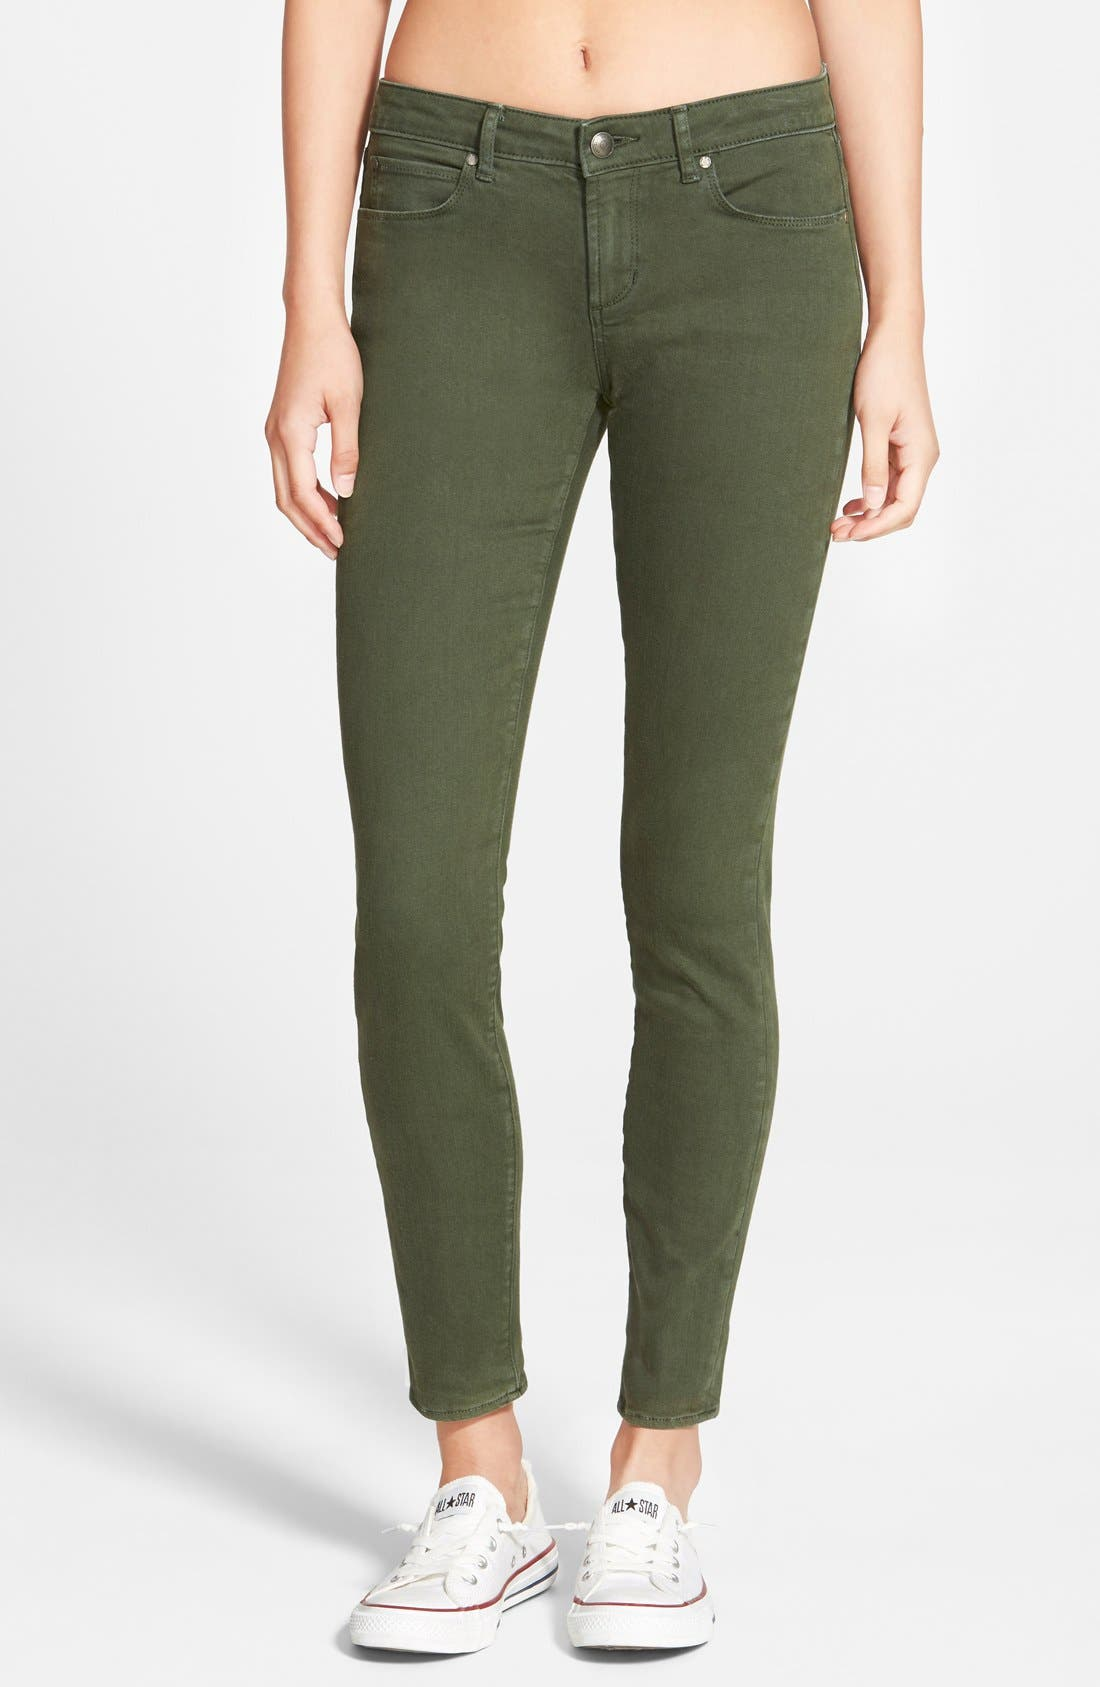 Alternate Image 1 Selected - Articles of Society 'Cindy' Overdye Skinny Jeans (Olive)